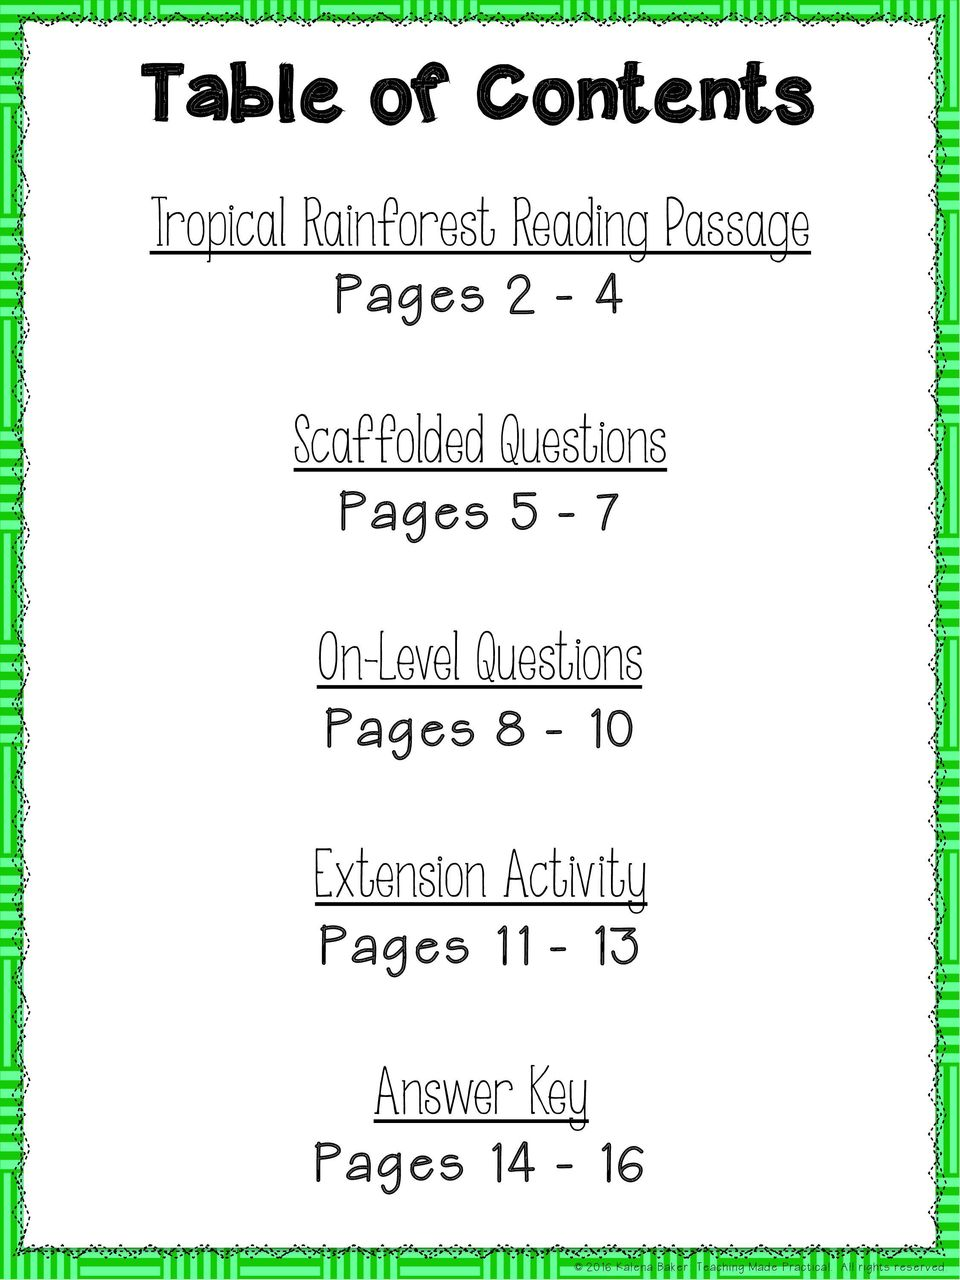 Questions Pages 5-7 On-Level Questions Pages